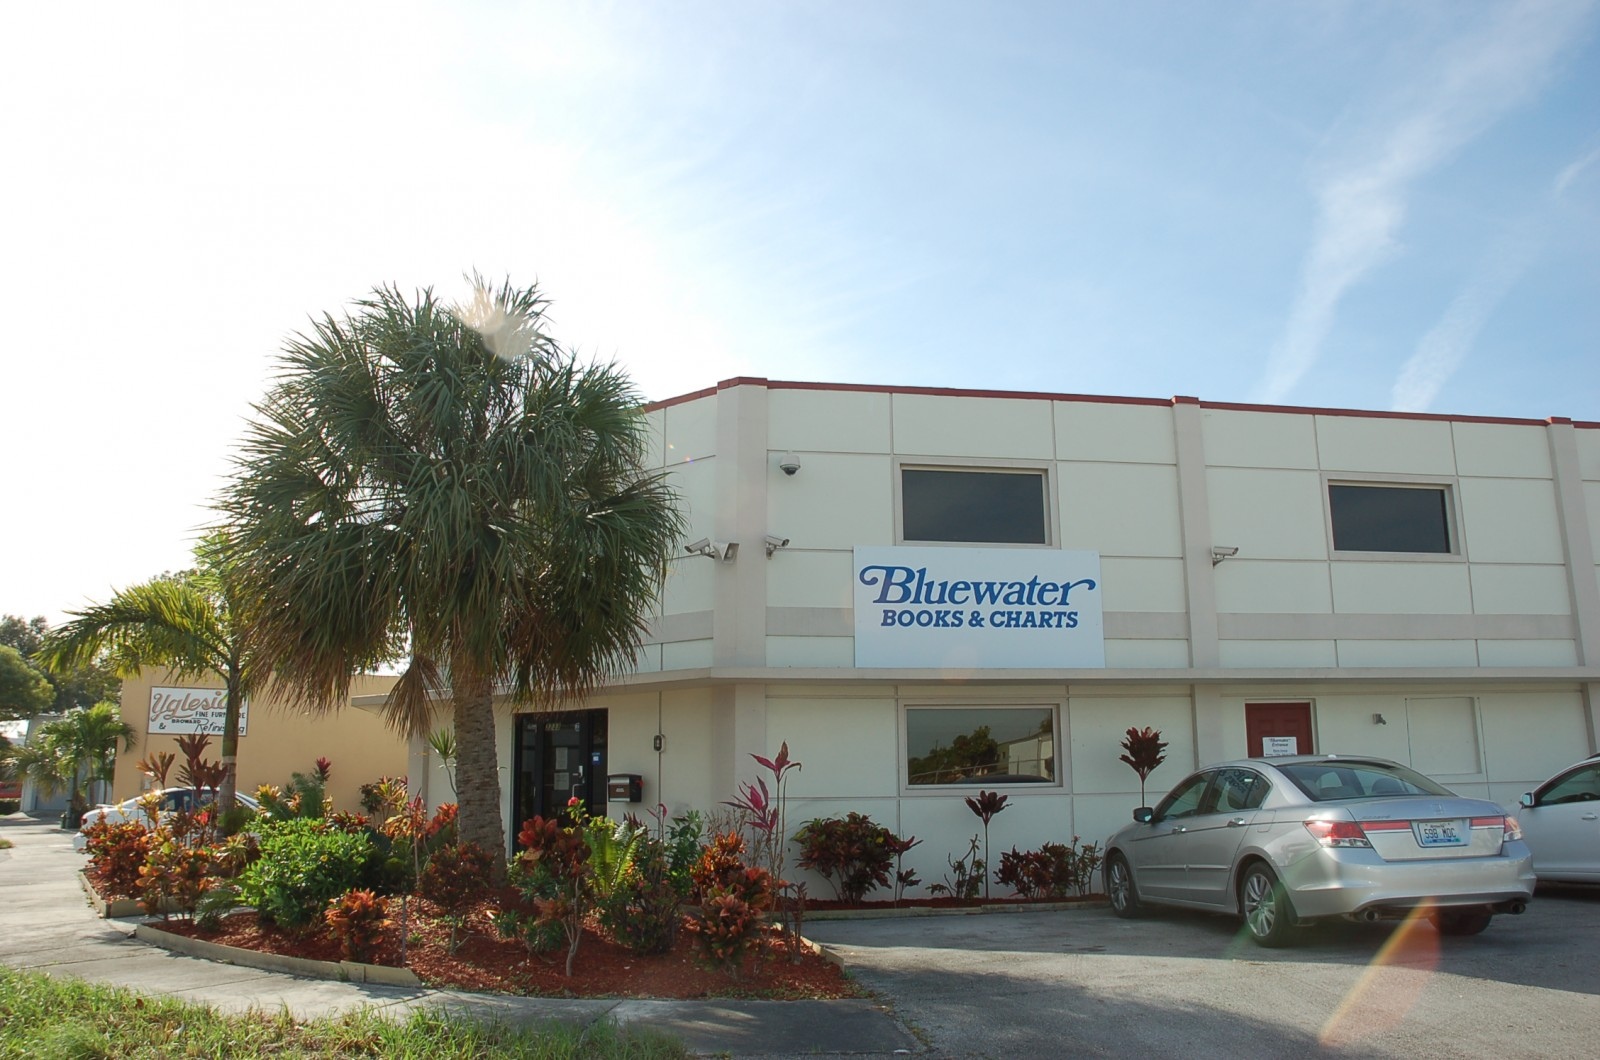 Bluewater Books & Charts has moved to a yacht business area off S.R. 84 in Ft. Lauderdale. PHOTO/DORIE COX